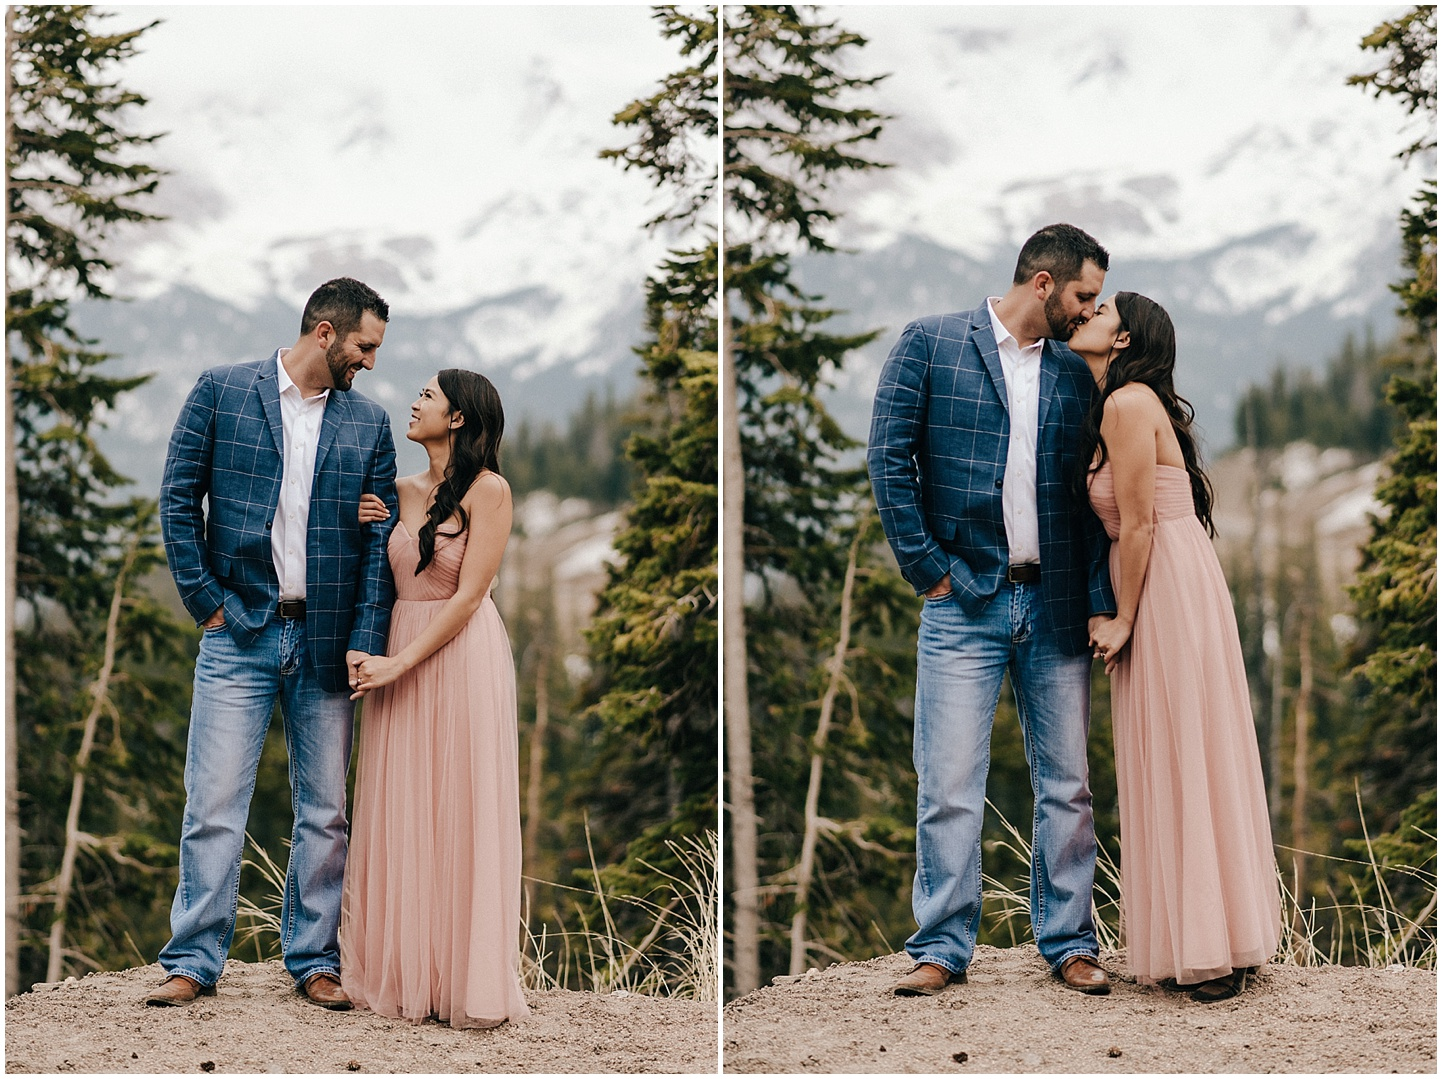 Steve and Celina with the continental divide in the background during their Berthod Pass engagement session.